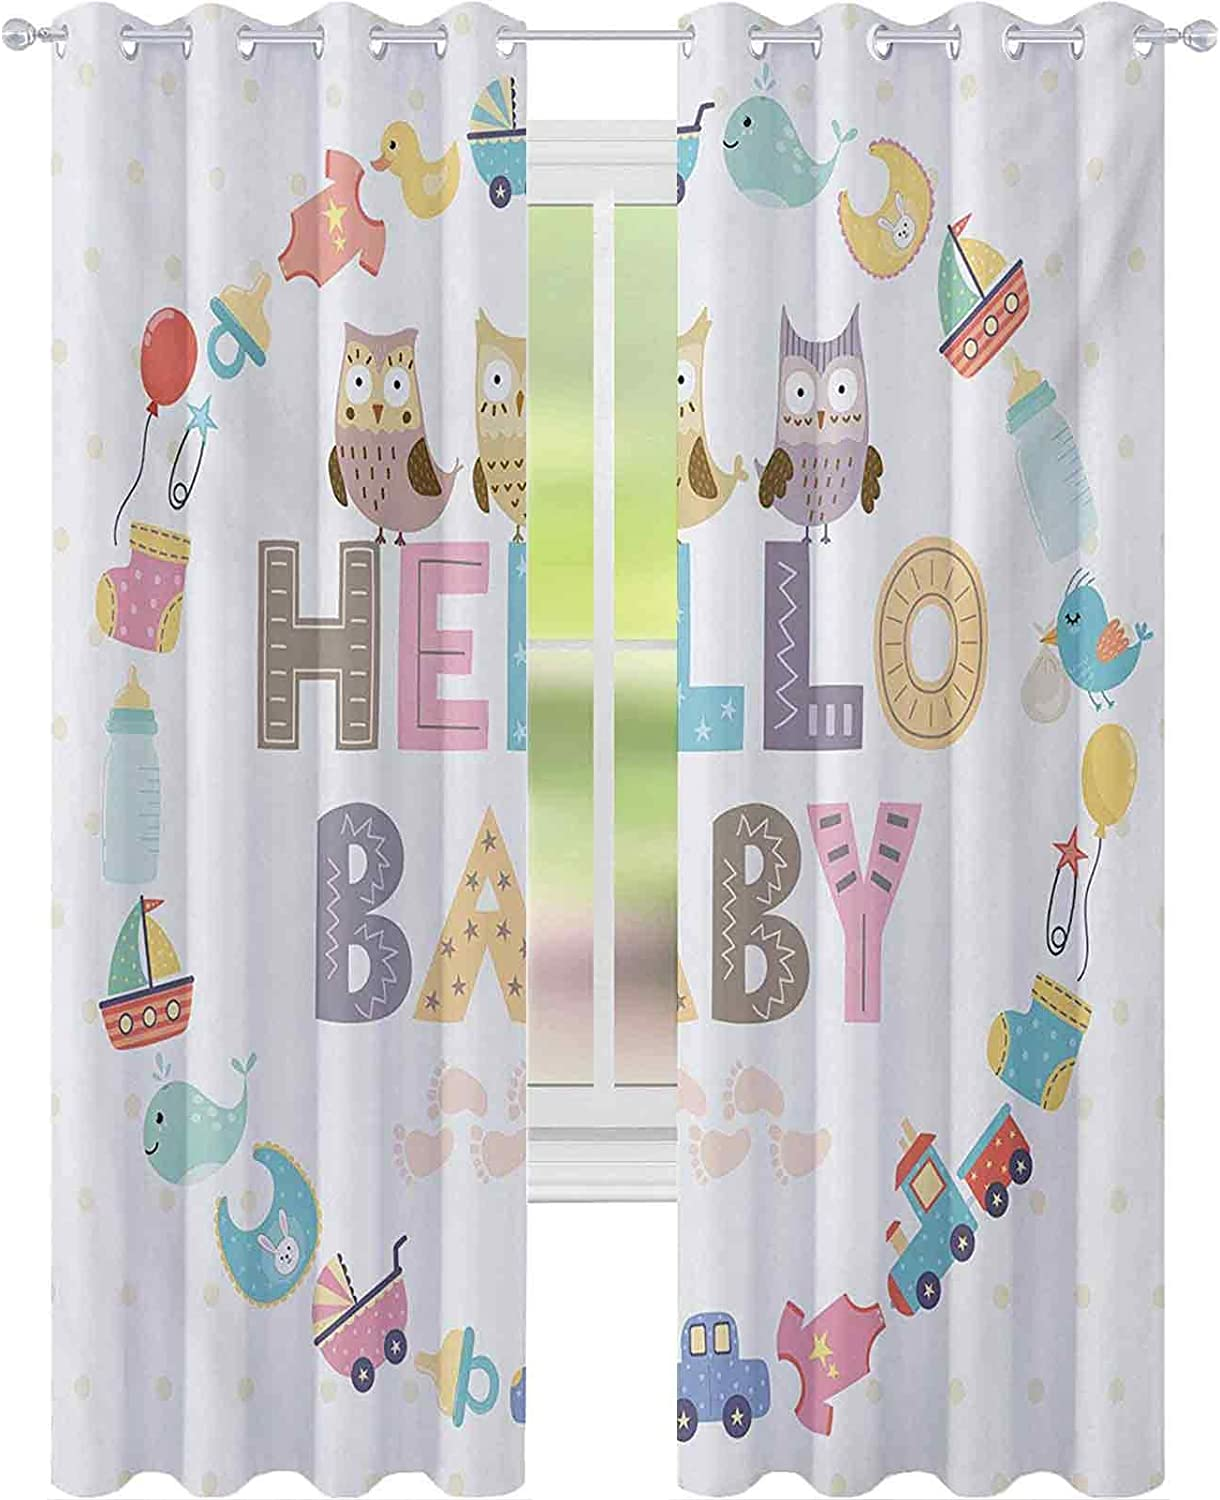 Light Blocking Curtains Hello Popular shop is the lowest price challenge Max 56% OFF Baby with Quote and Kids Elements